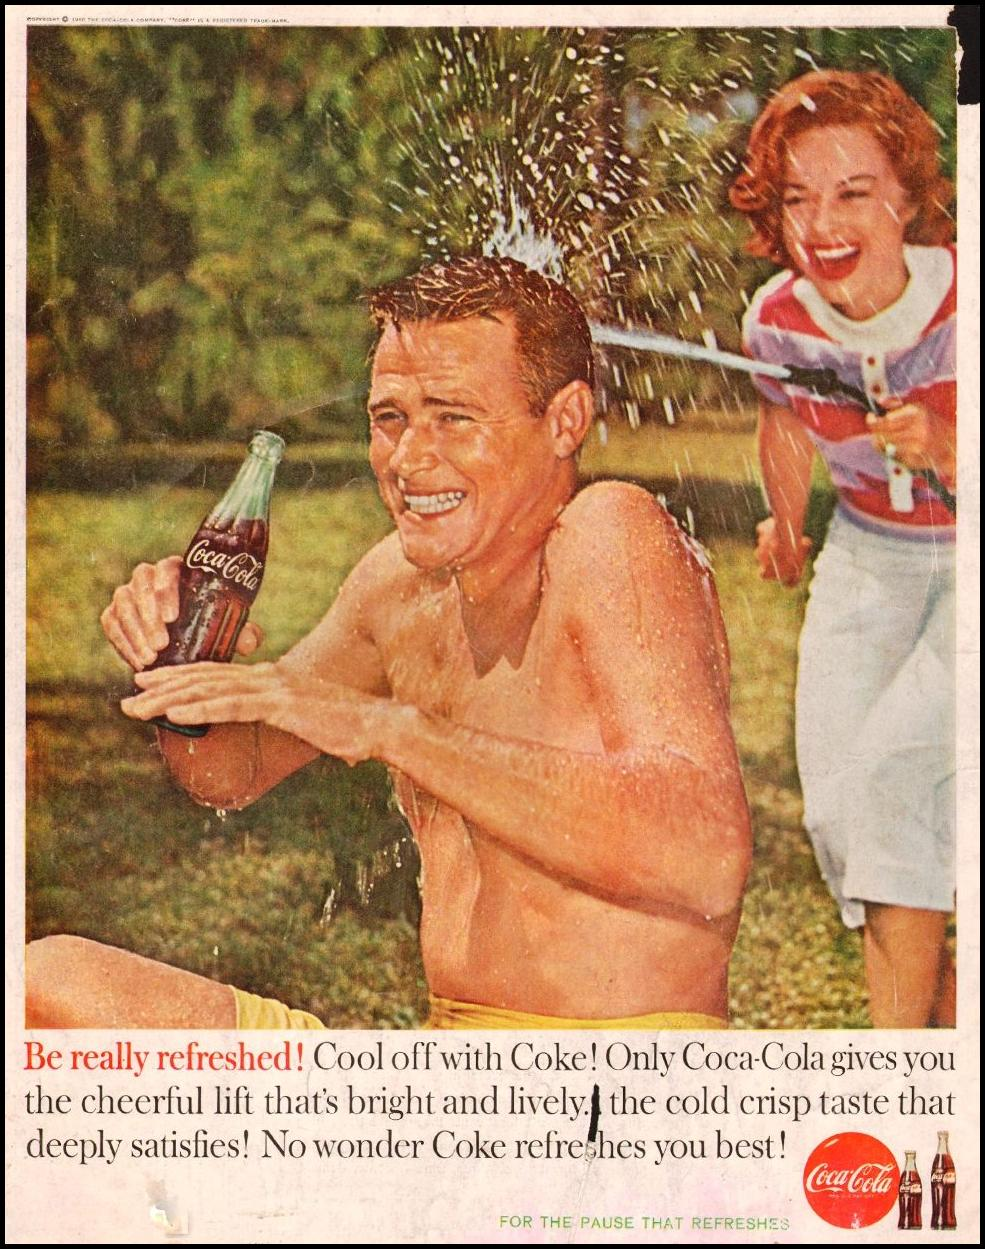 COCA-COLA SATURDAY EVENING POST 06/04/1960 BACK COVER